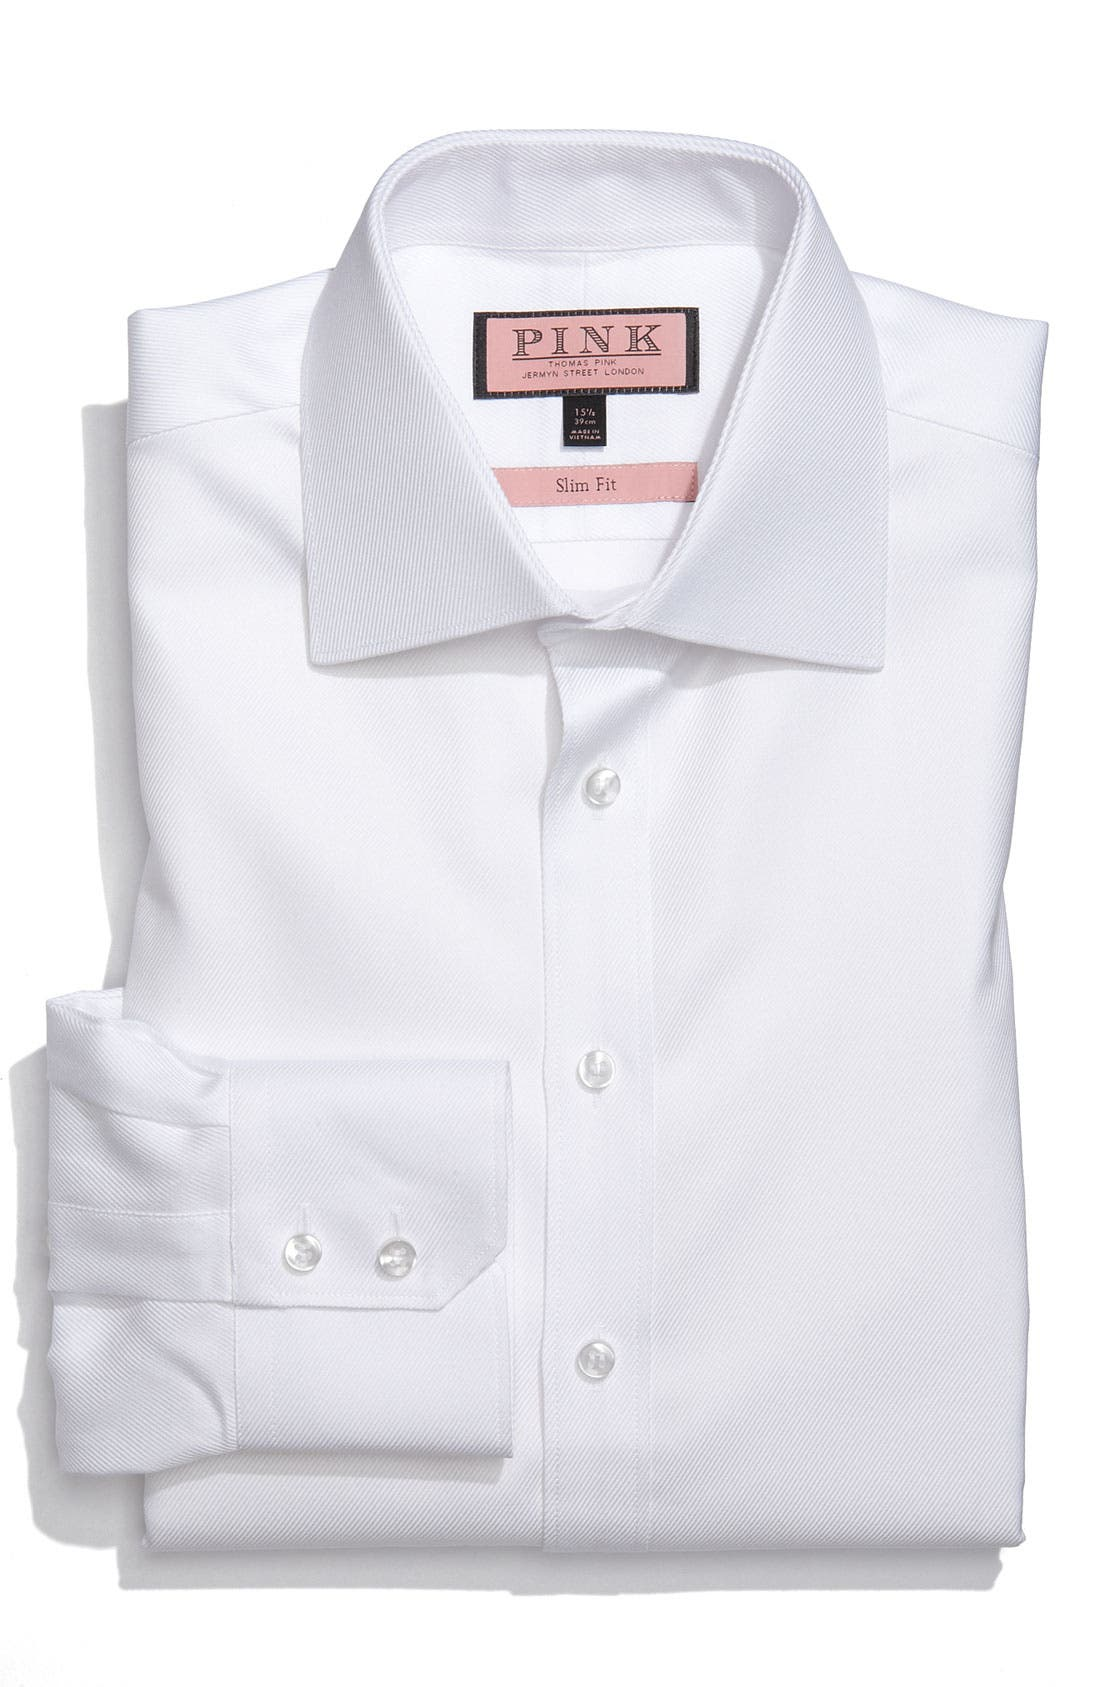 Main Image - Thomas Pink Slim Fit Dress Shirt